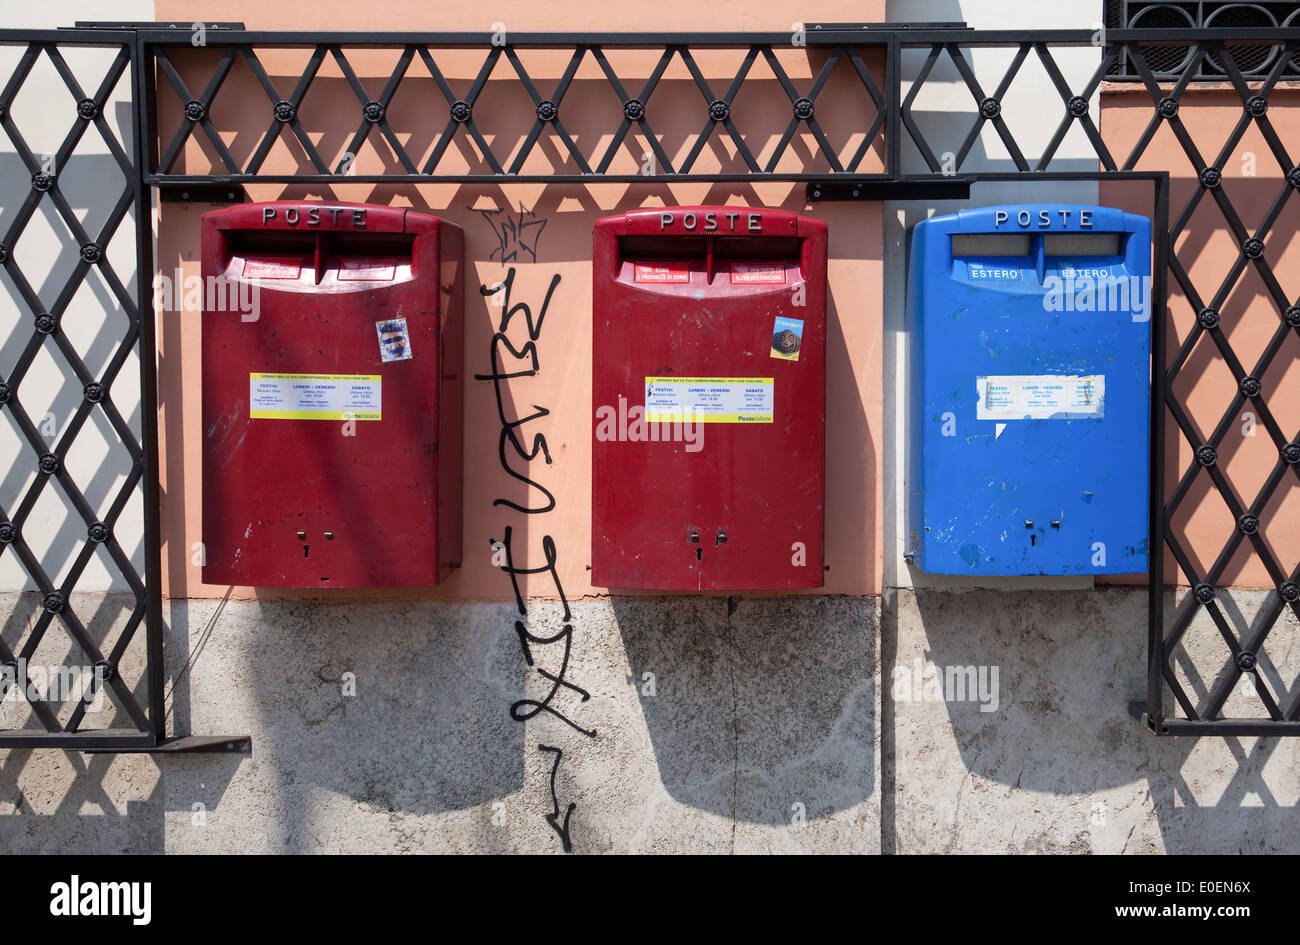 Postkästen, Rom, Italien - Mailboxes, Rome, Italy Stock Photo